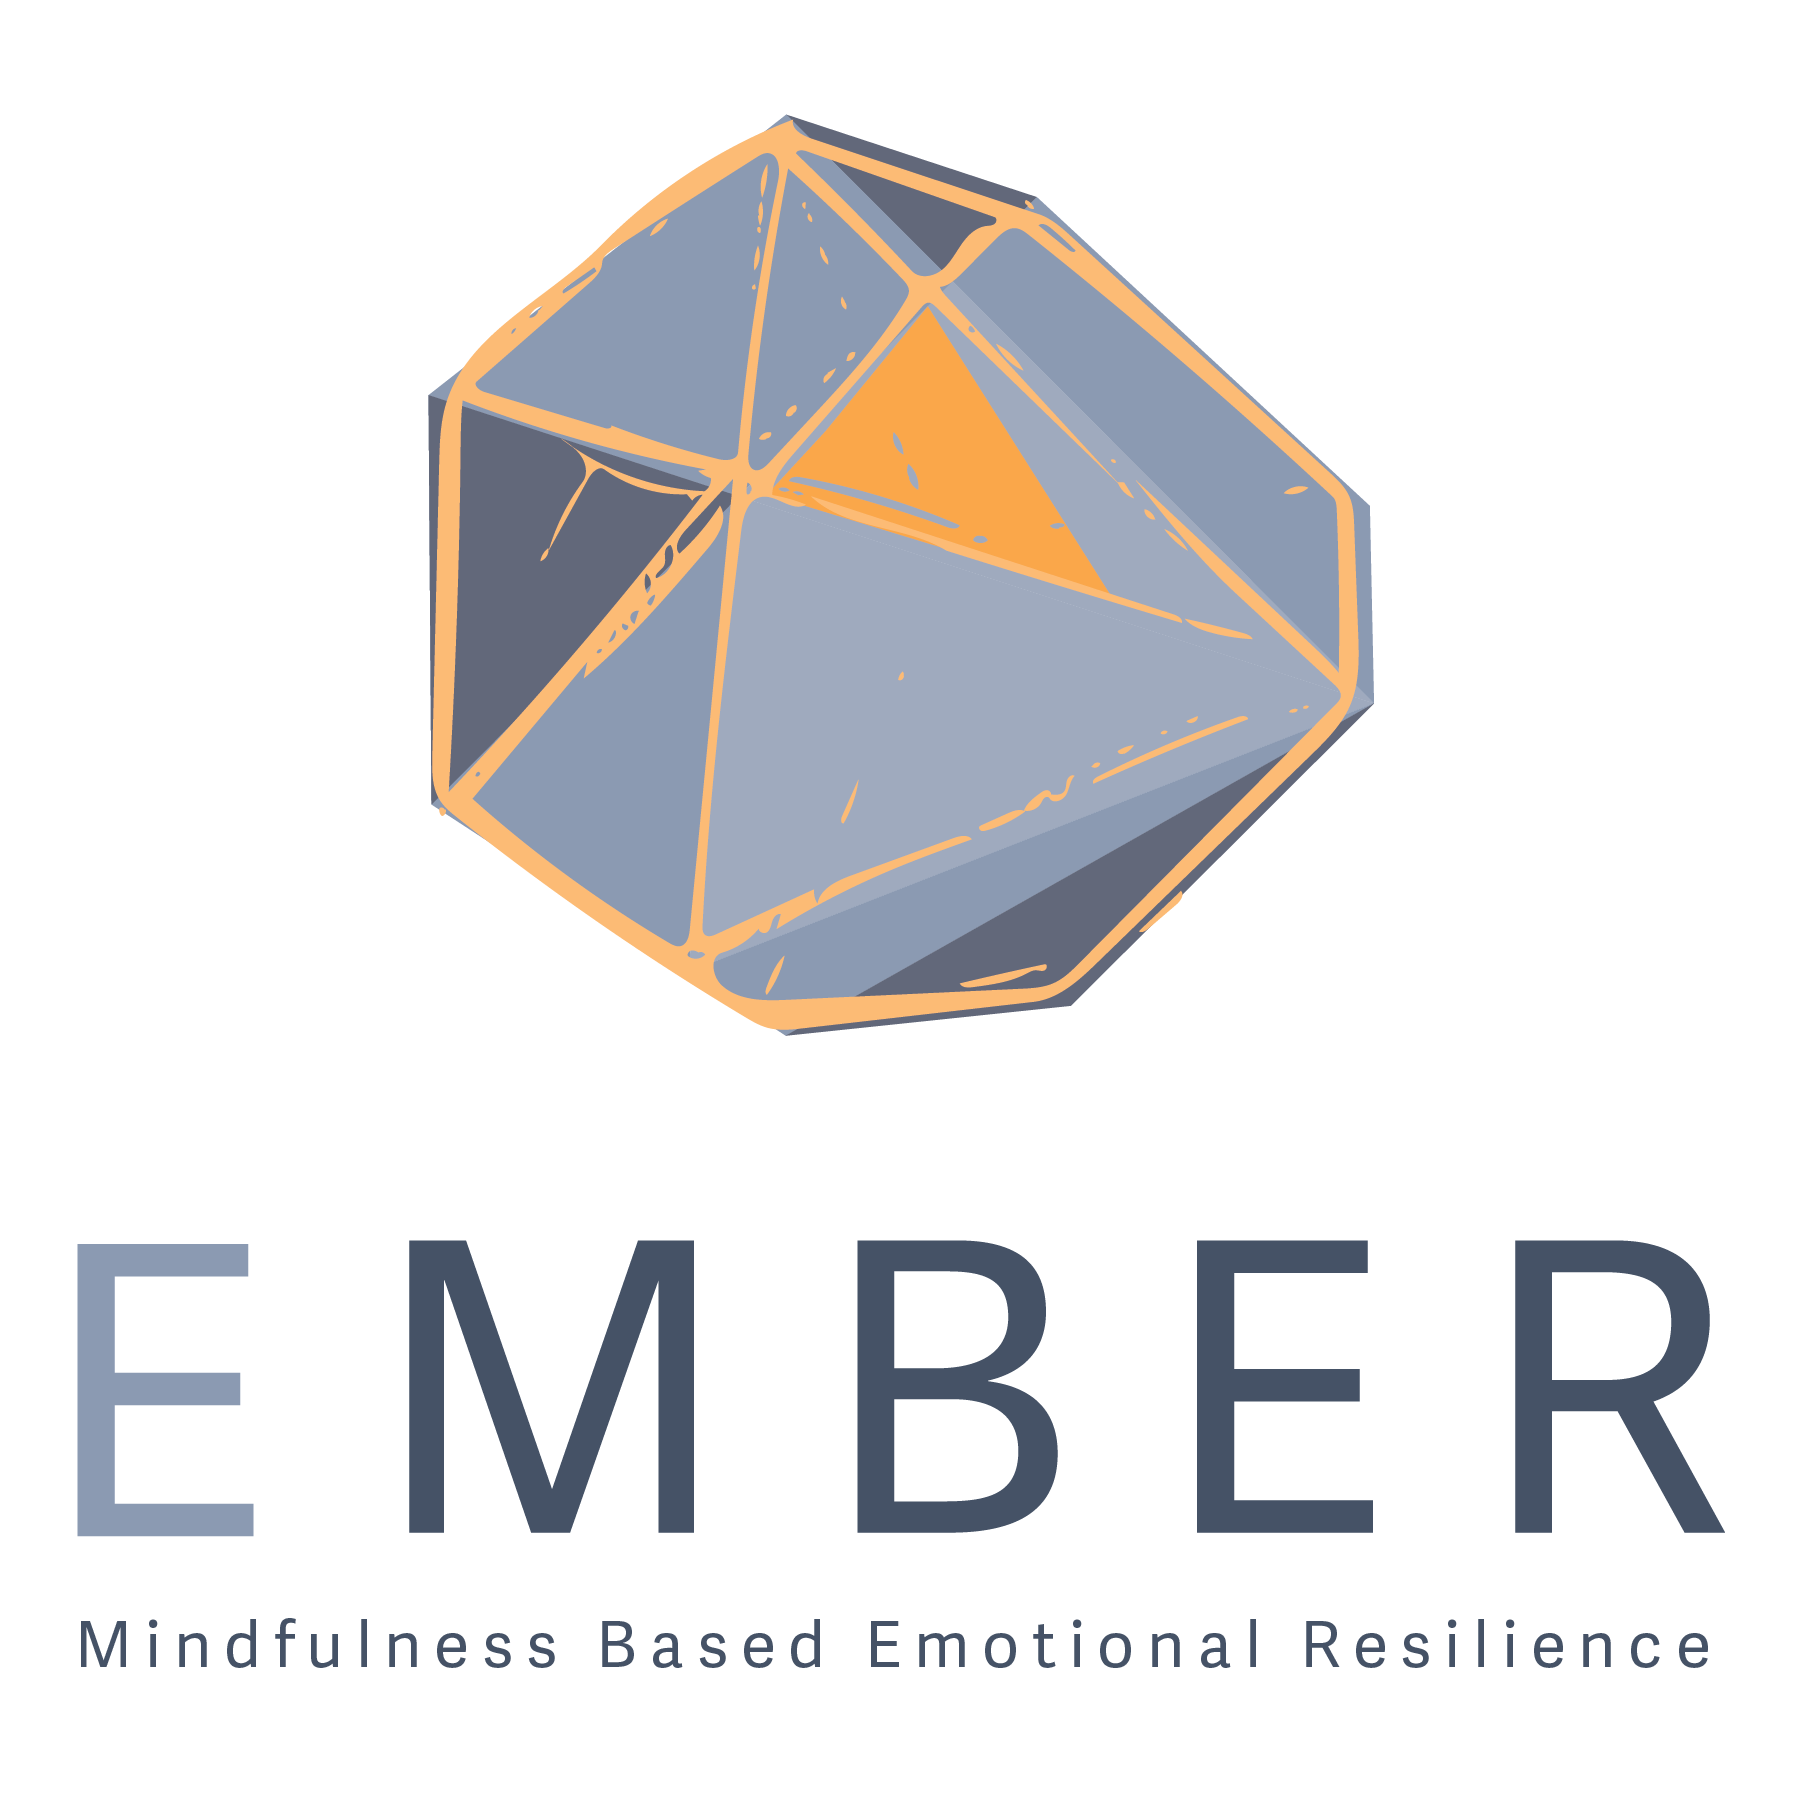 EMBER-02.png